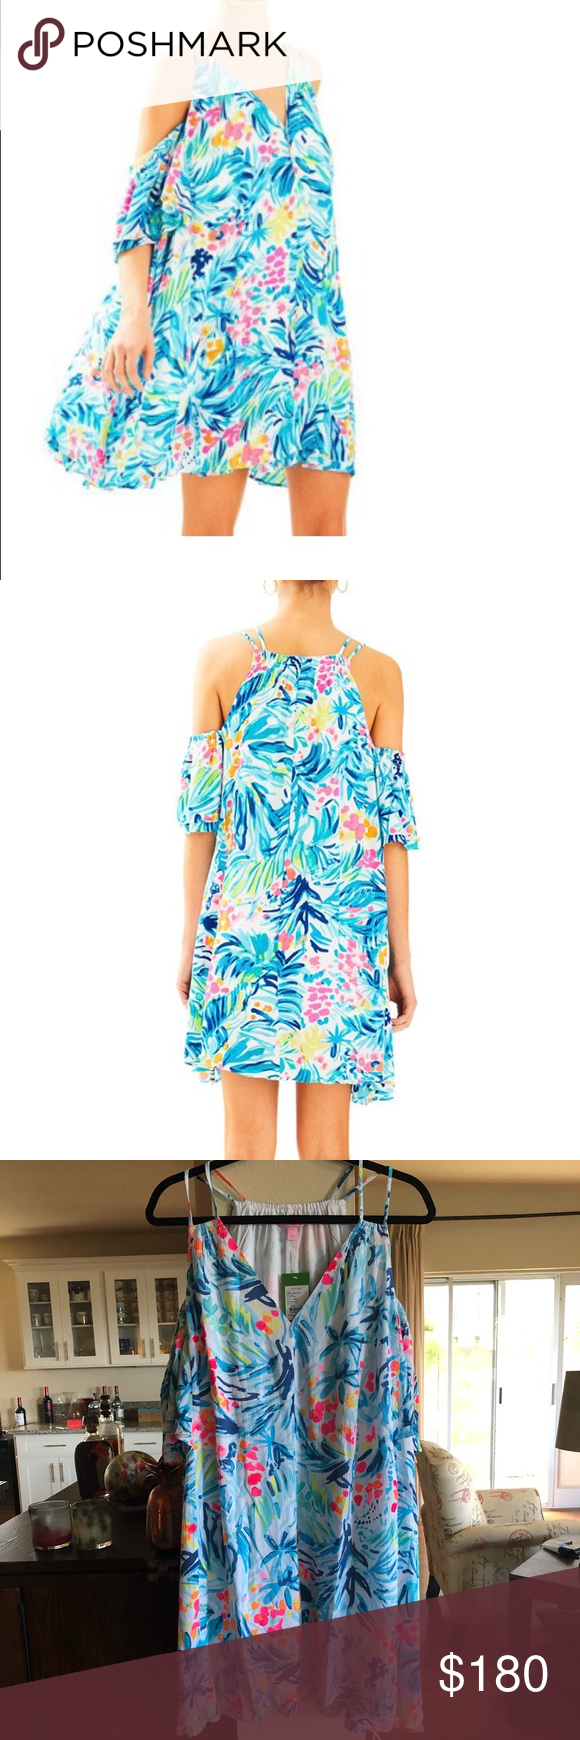 86abe7c6944 NWT Lilly Pulitzer Bellamie Dress | Cold shoulder, Hand washing and ...